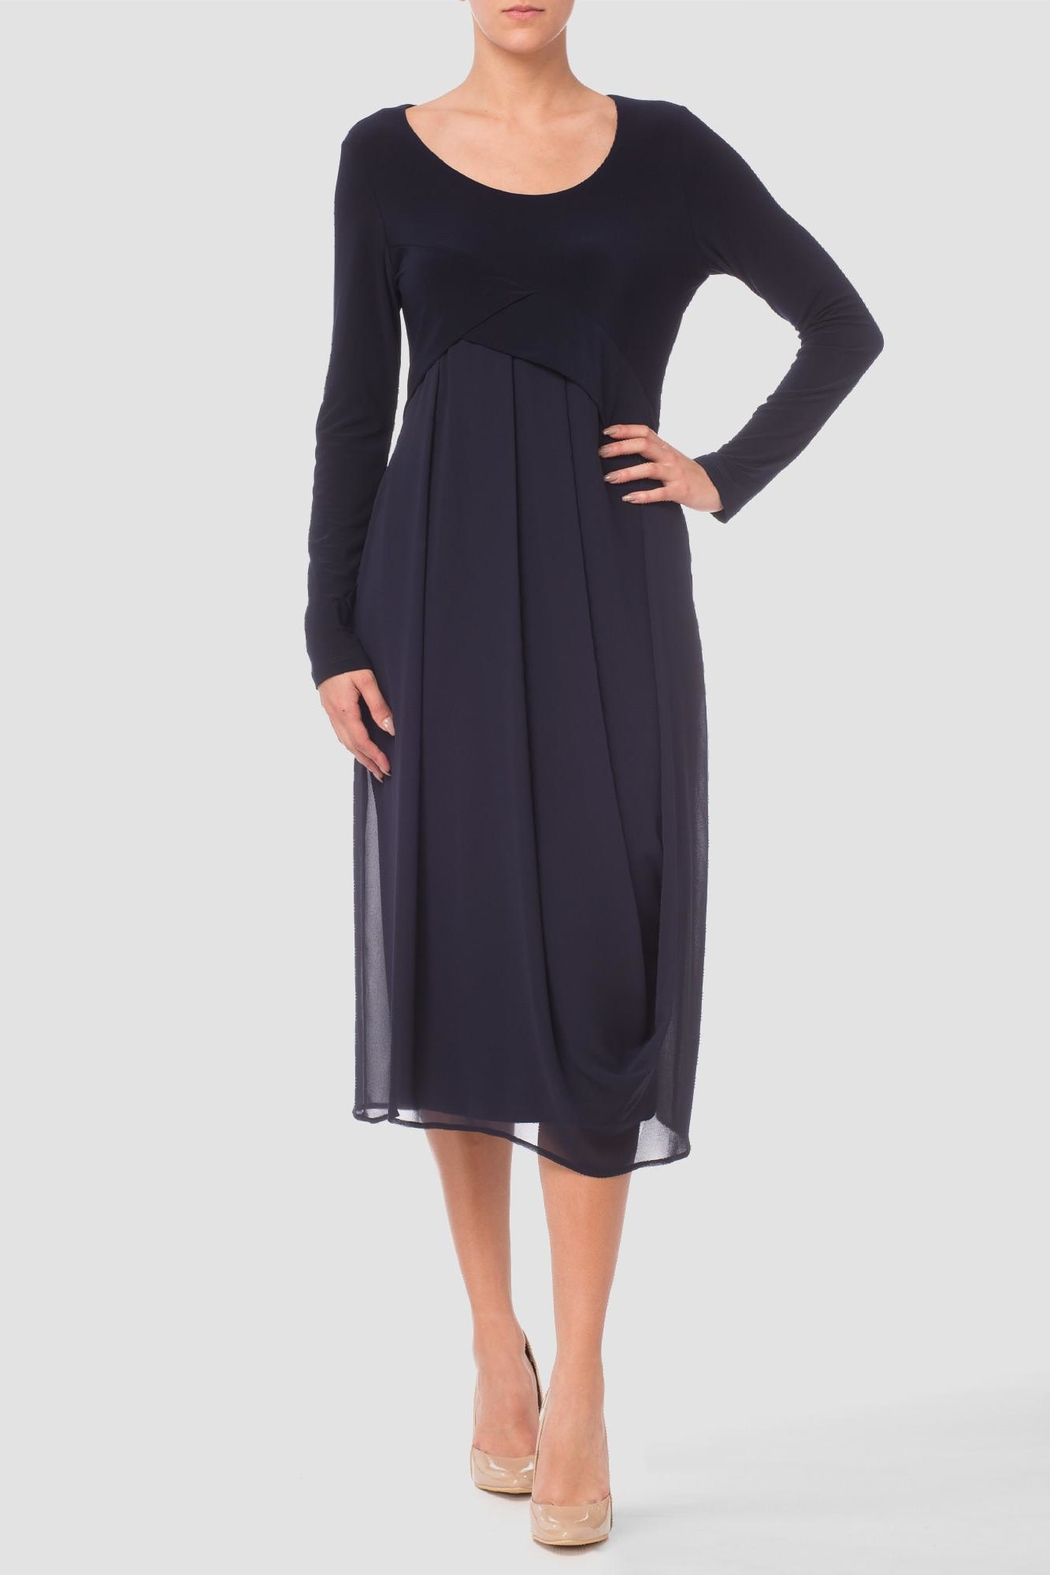 Joseph Ribkoff Bess Midnight Dress - Main Image